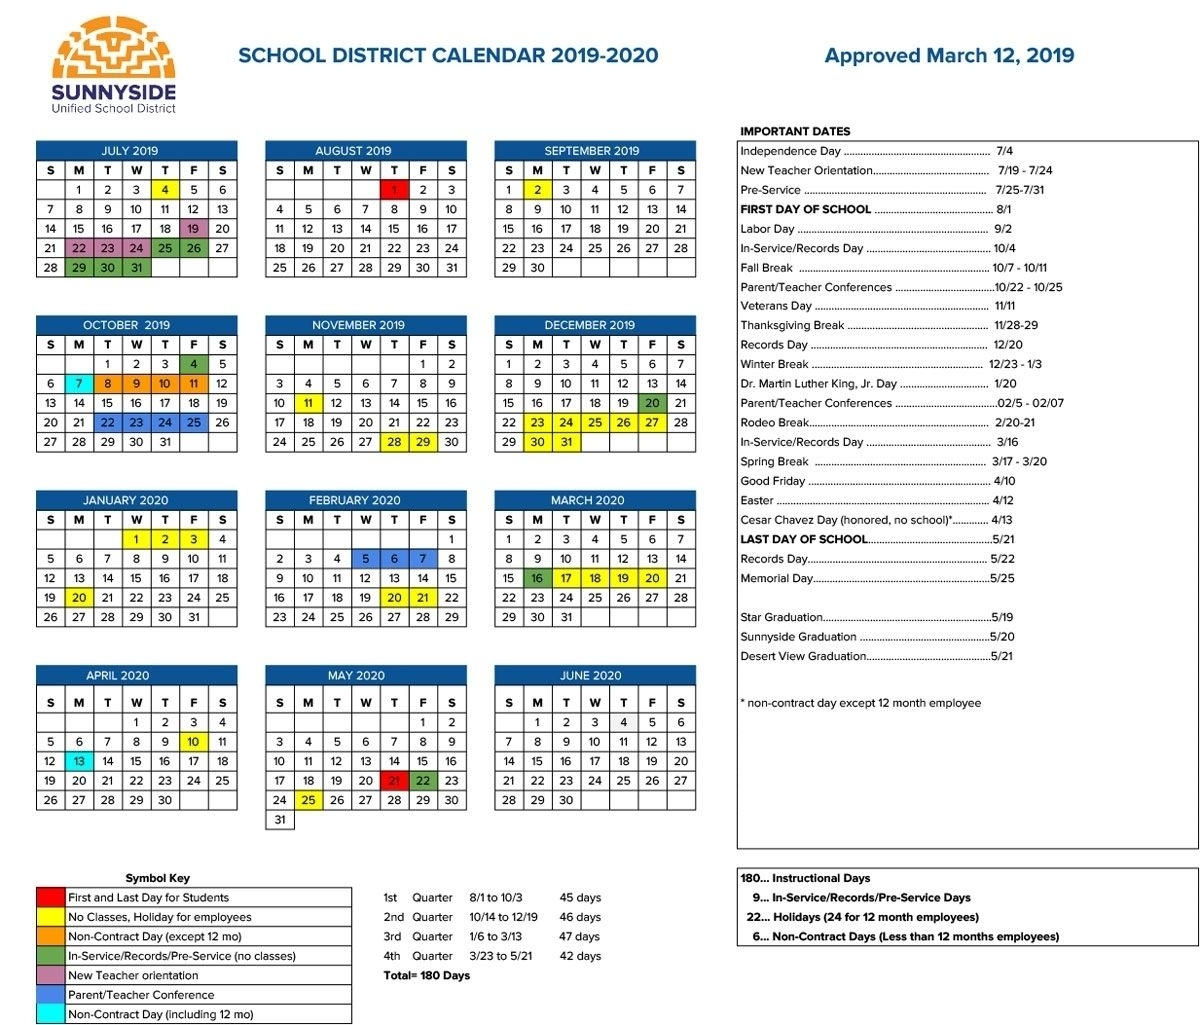 Calendar With All The Special Days In 2020 In 2020 with regard to Spec Ial Days In 2020